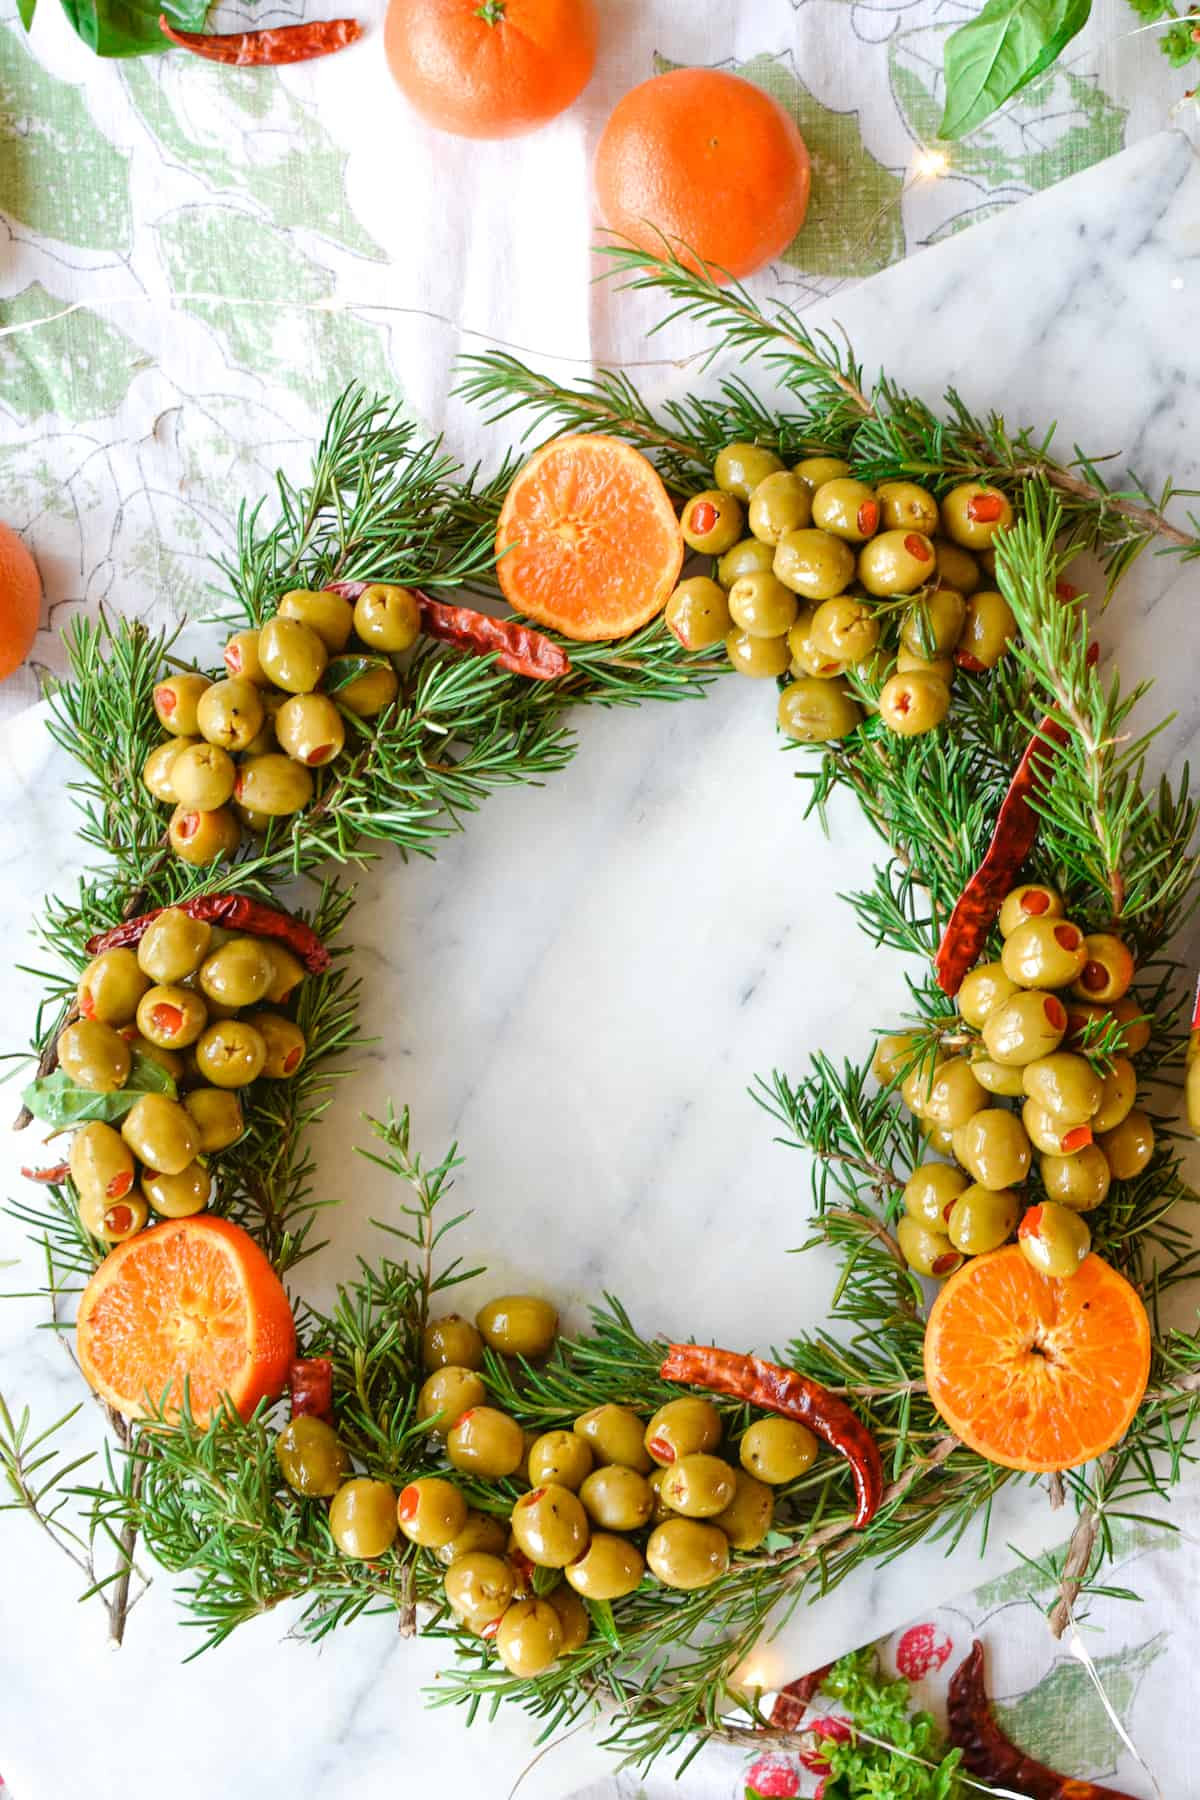 A super easy holiday appetizer recipe made with briny olives warmed with fresh tangerine slices, arbol chiles, and black pepper and shaped into a wreath with fresh rosemary. Very impressive indeed! #holidayappetizer #wreathappetizer #olivewreath #marinatedolives